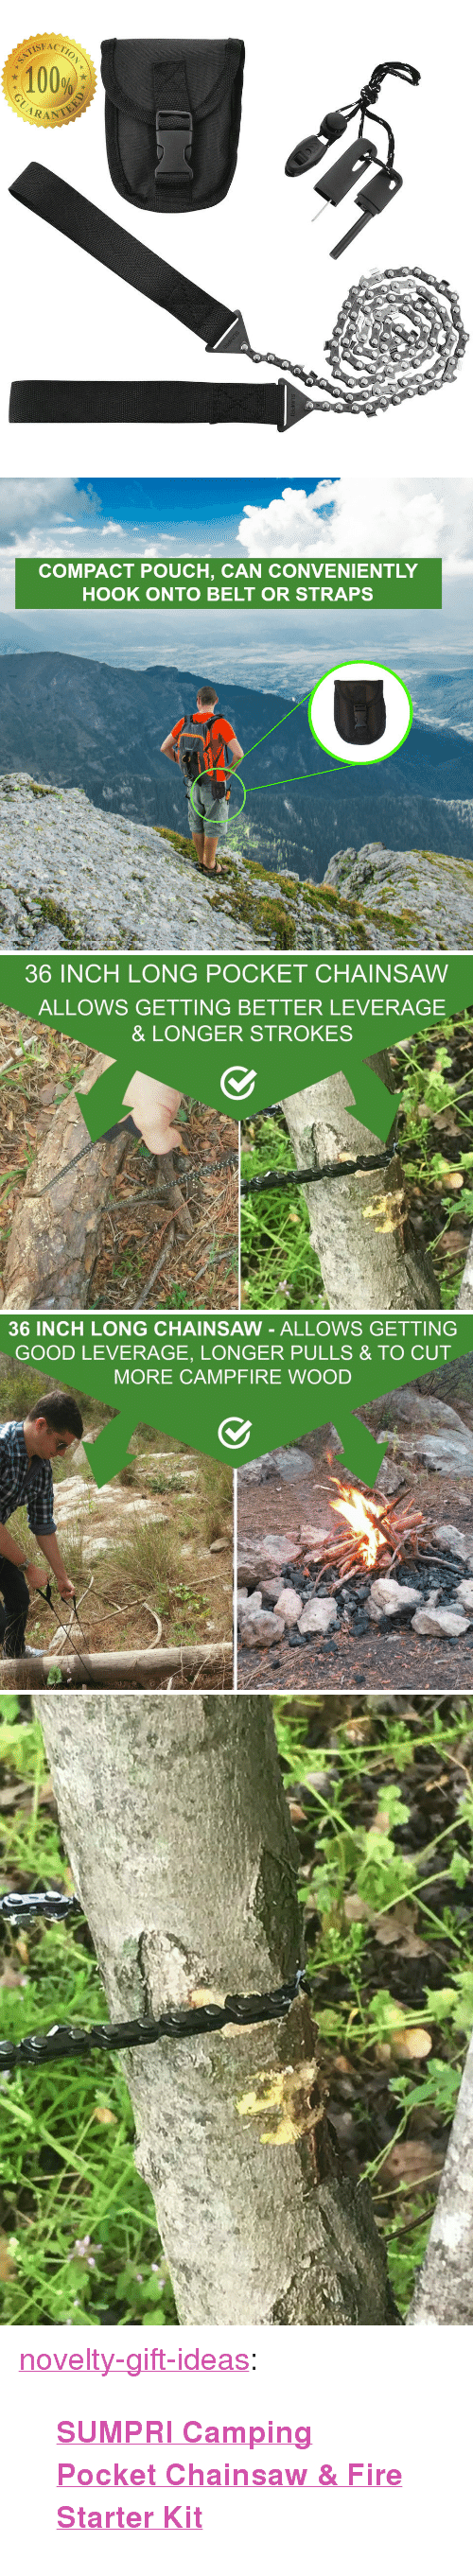 "Leverage: 100%  CARAN   COMPACT POUCH, CAN CONVENIENTLY  HOOK ONTO BELT OR STRAPS   36 INCH LONG POCKET CHAINSAW  ALLOWS GETTING BETTER LEVERAGE  & LONGER STROKES   36 INCH LONG CHAINSAW - ALLOWS GETTING  GOOD LEVERAGE, LONGER PULLS & TO CUT  MORE CAMPFIRE WOOD <p><a href=""https://novelty-gift-ideas.tumblr.com/post/160564446093/sumpri-camping-pocket-chainsaw-fire-starter-kit"" class=""tumblr_blog"">novelty-gift-ideas</a>:</p><blockquote><p><b><a href=""http://pint-sumpricampingkit.gr8.com/"">  SUMPRI Camping Pocket Chainsaw &amp; Fire Starter Kit  </a></b></p></blockquote>"